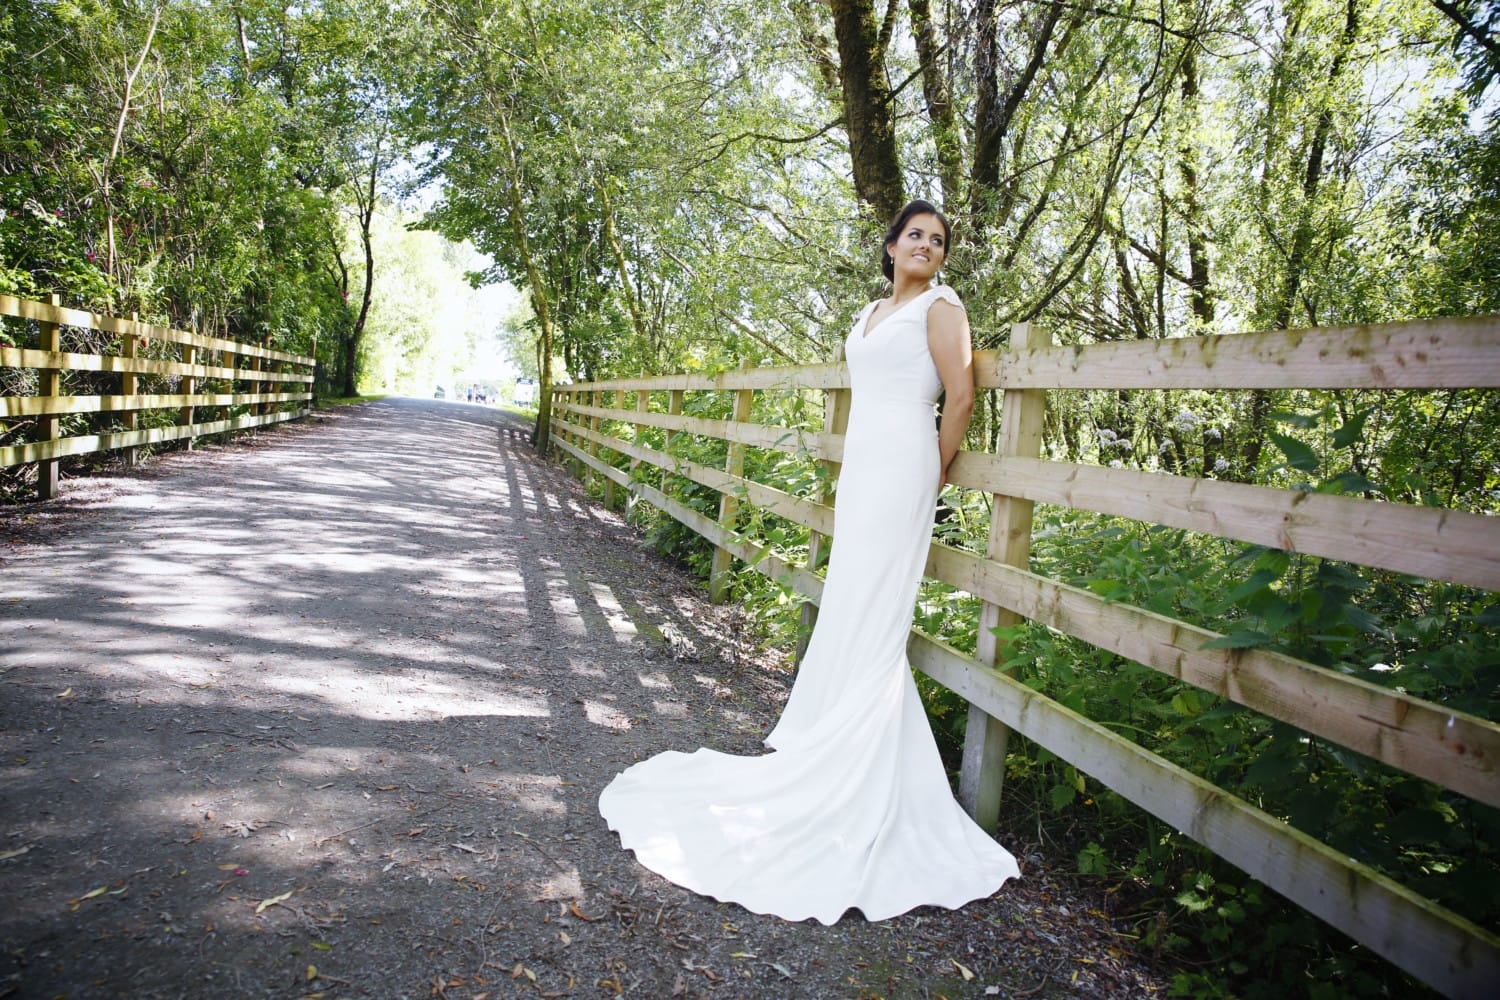 San patrick milan bridal gown sell my wedding dress for Sell wedding dress san diego